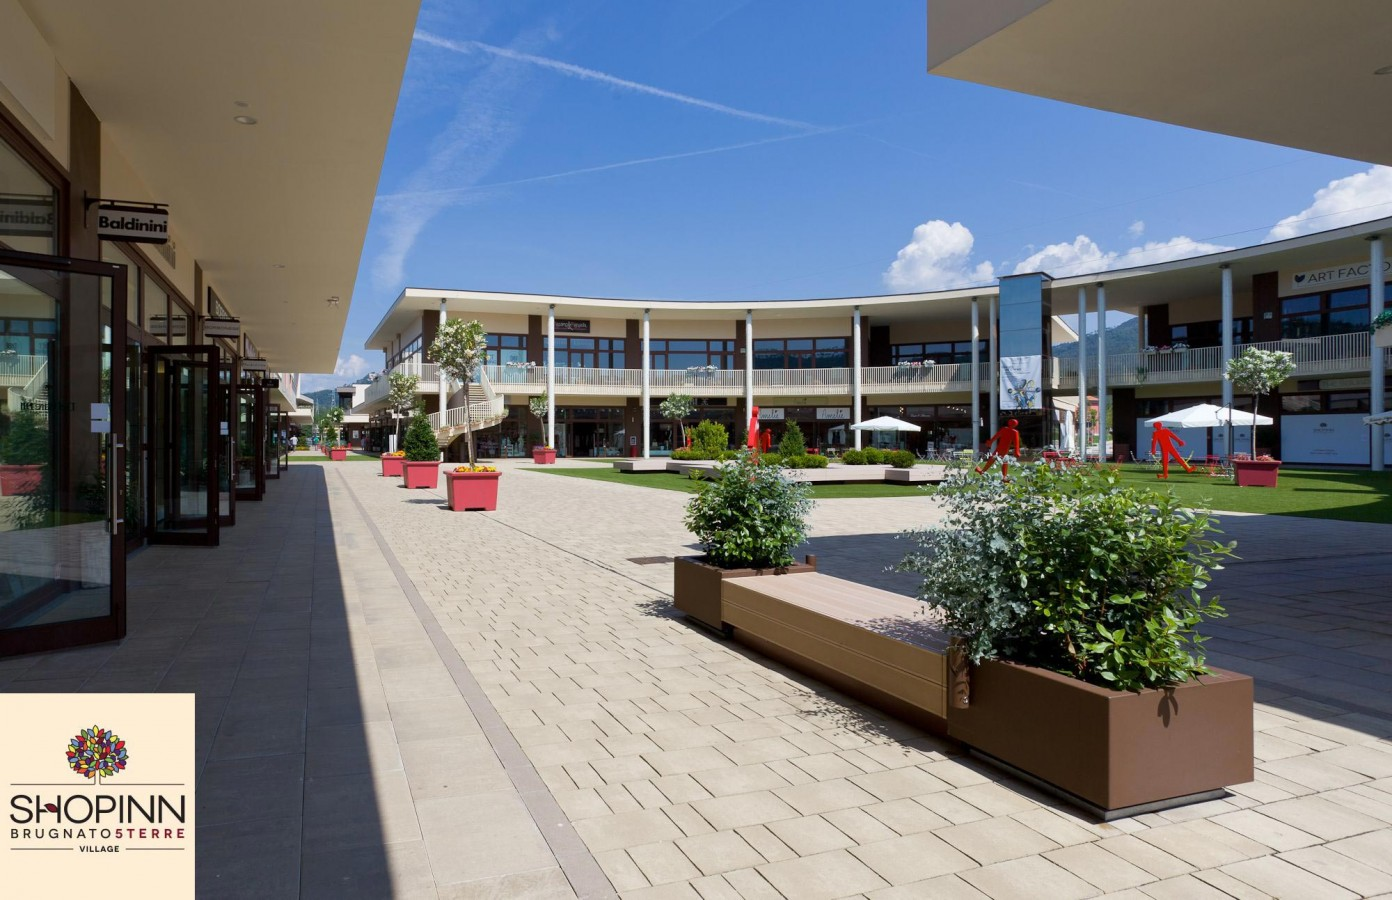 Outlet Village Shopinn Brugnato - HOTEL GABRINI in Marina di Massa